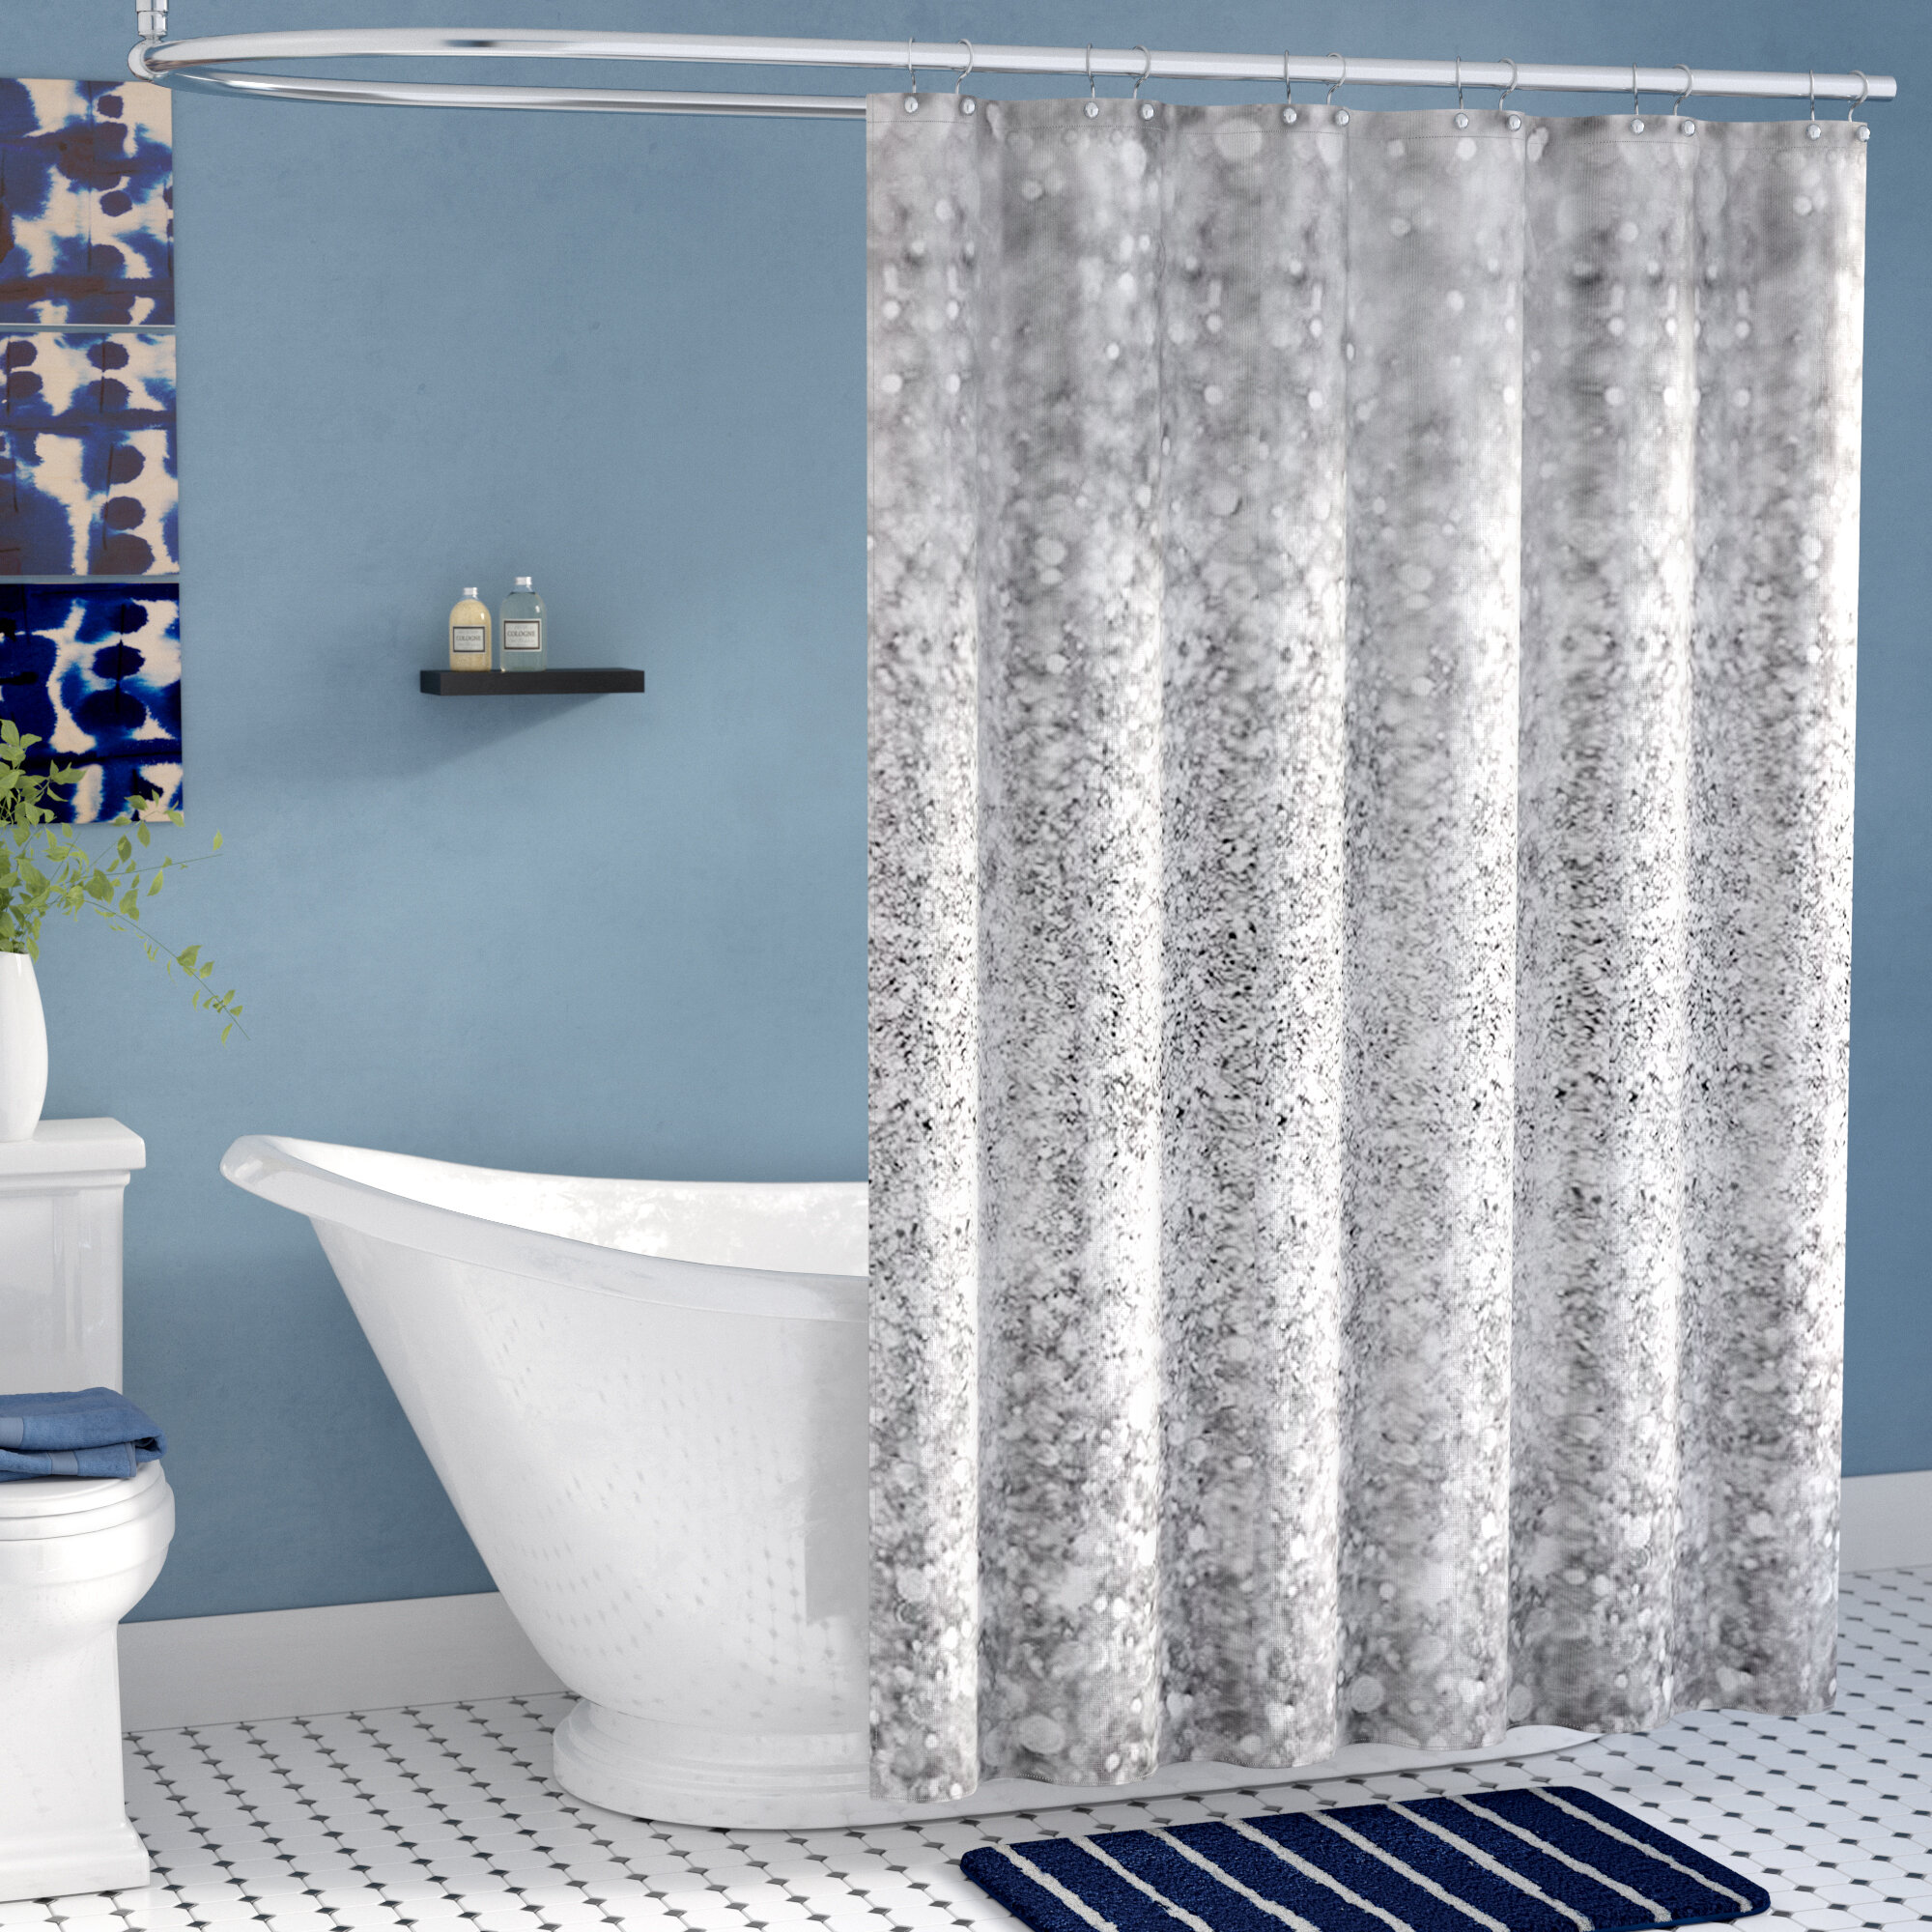 Shiny Glamour Luxury Single Shower Curtain